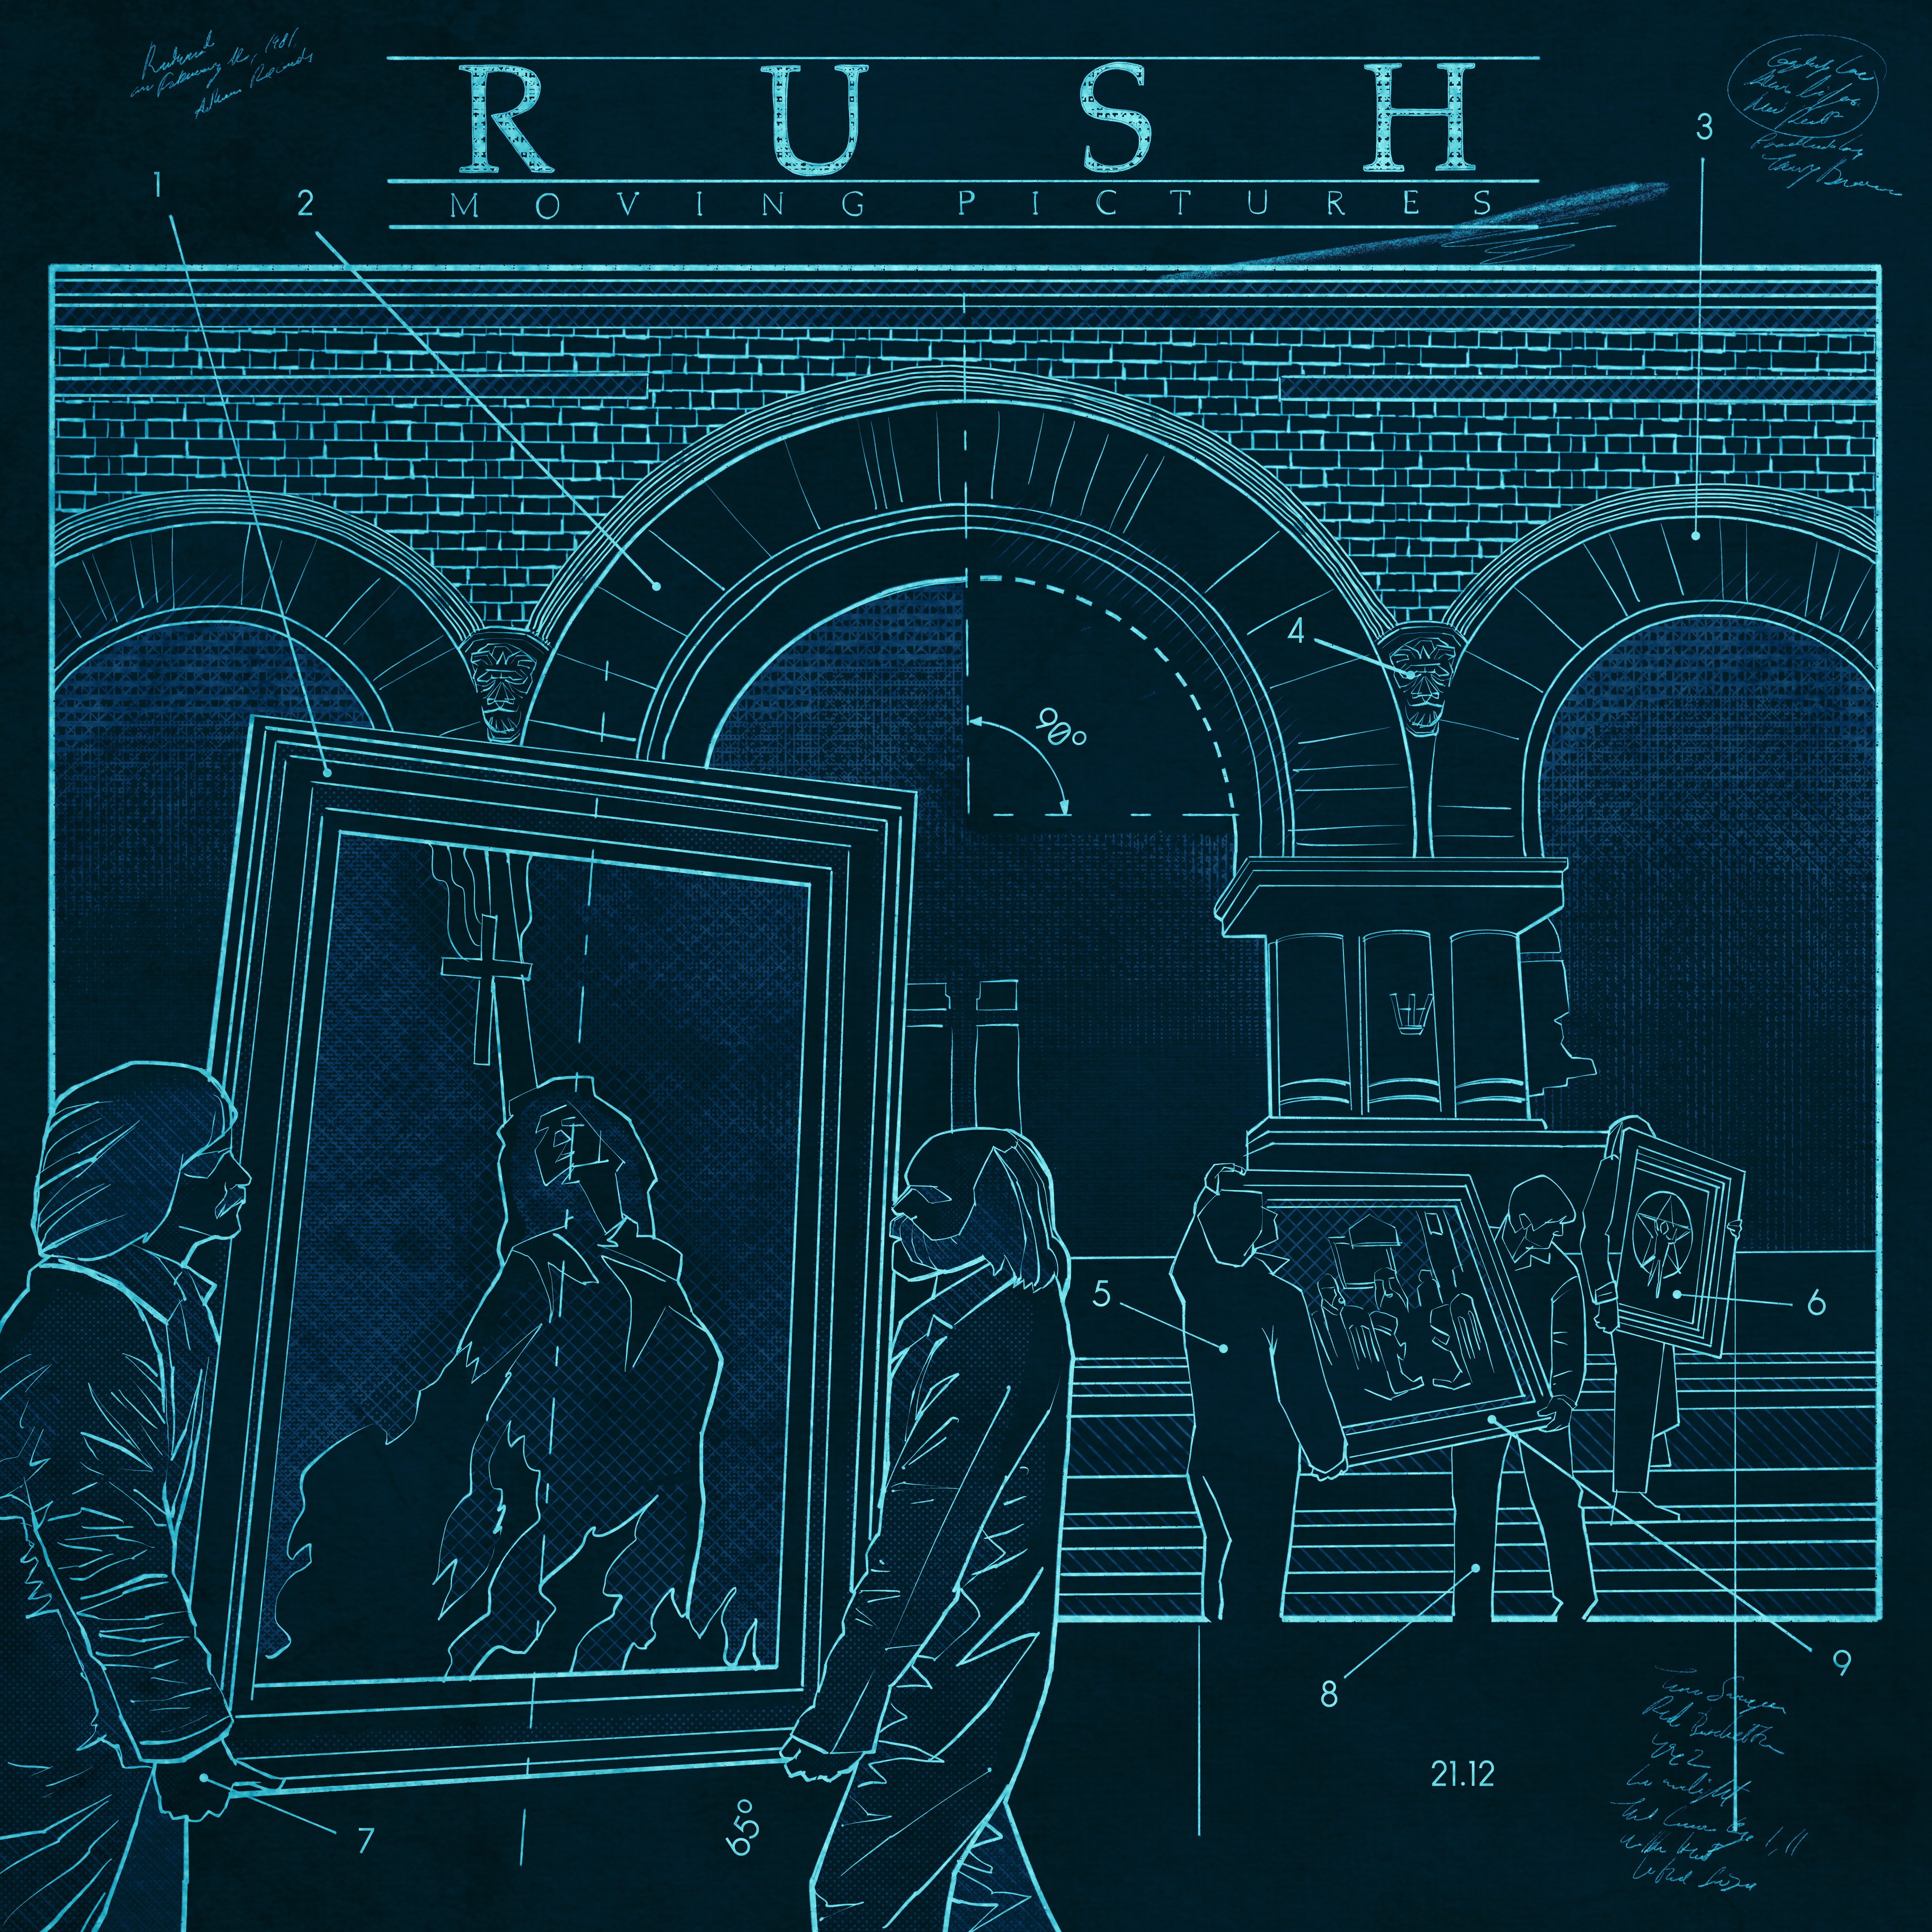 Rush Moving Pictures Blackprint